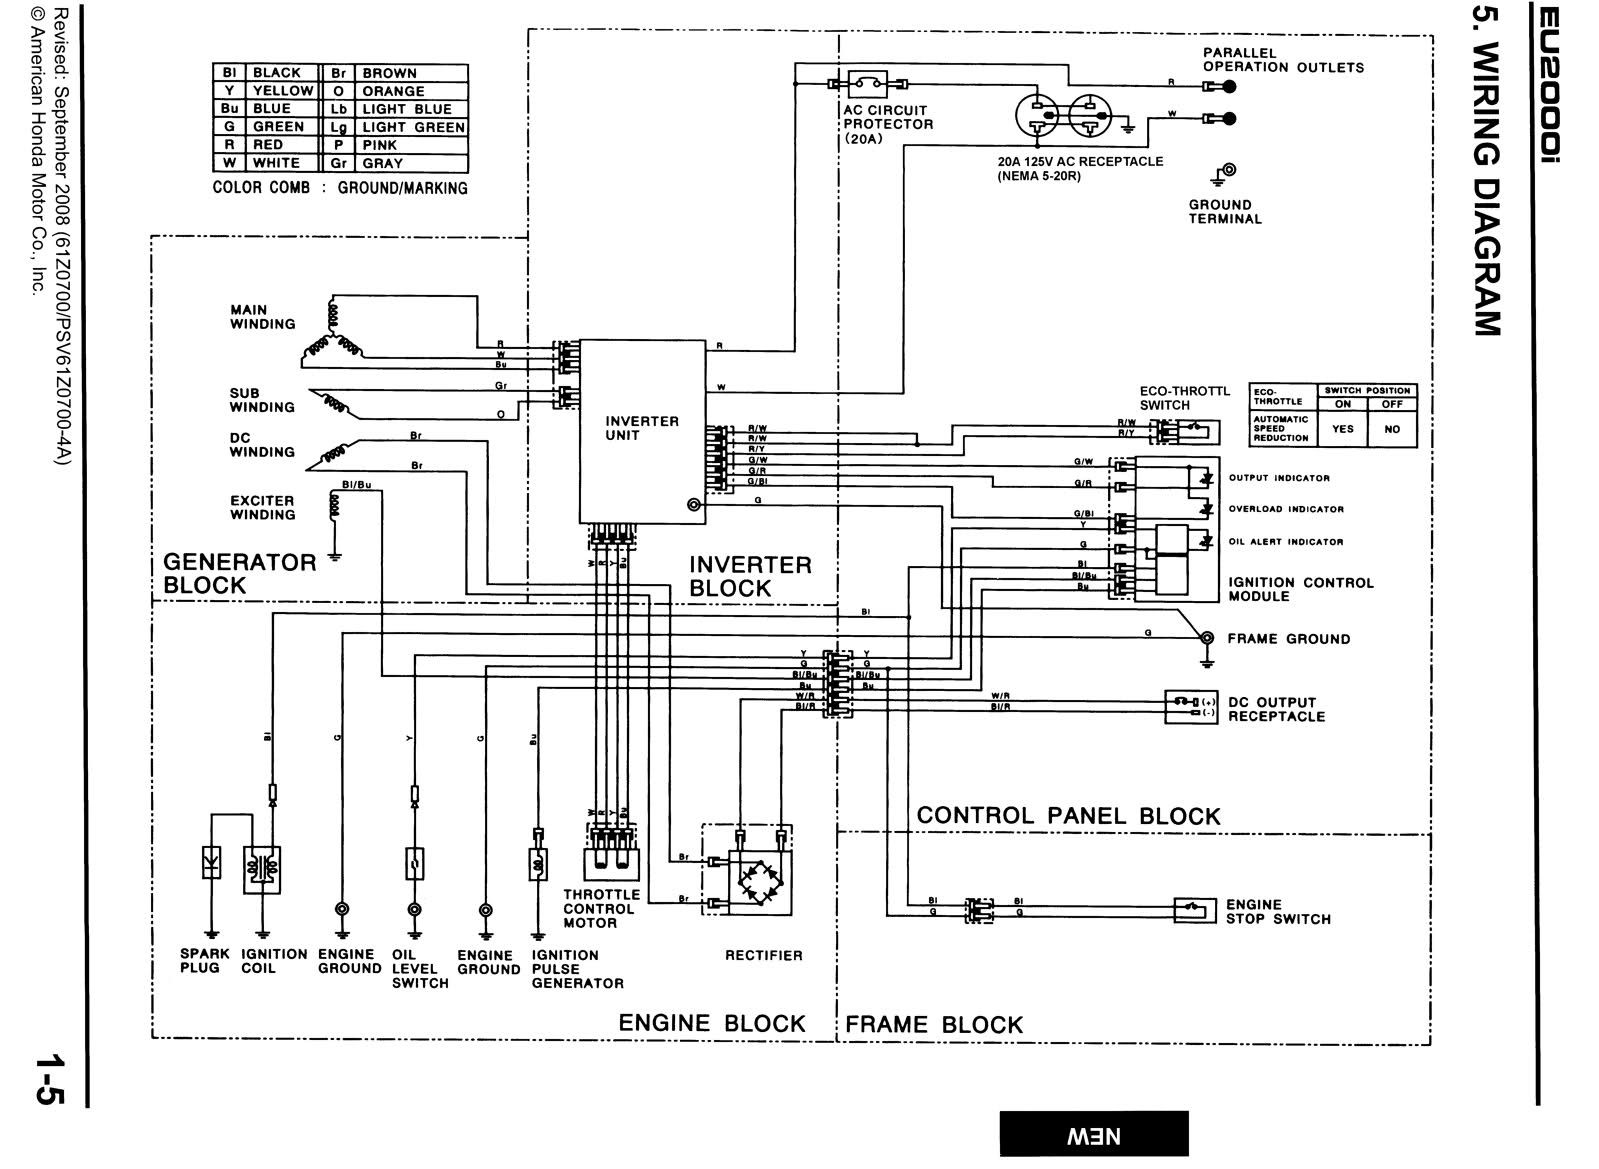 Holiday Rambler Wiring Diagram | Camper to Glamper | Pinterest ...